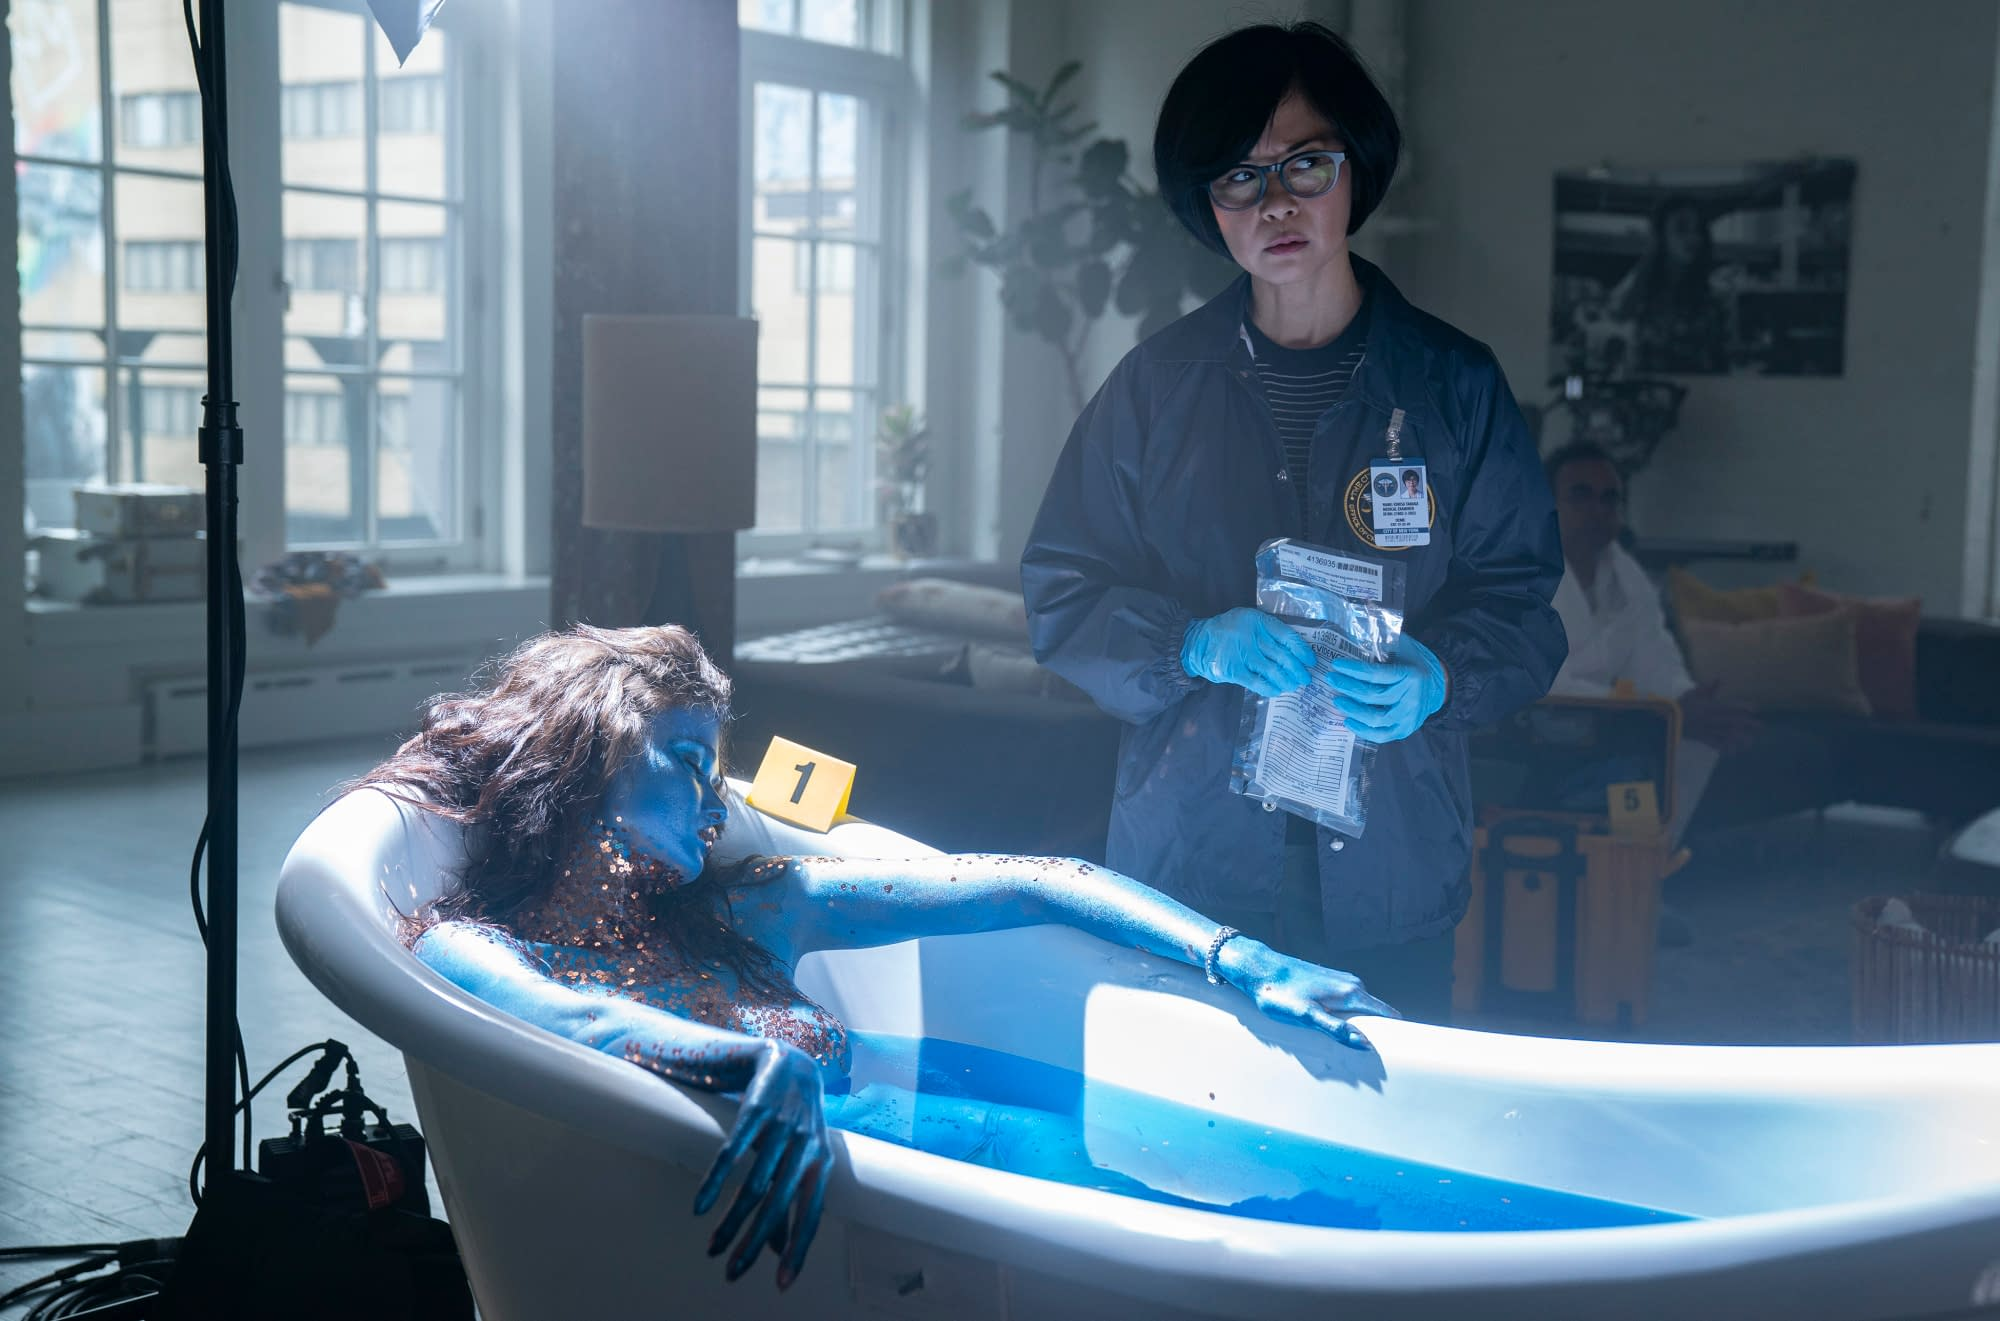 """""""Prodigal Son"""": Does Jessica Have """"Designer Complicity"""" in The Surgeon's Crimes? [PREVIEW]"""